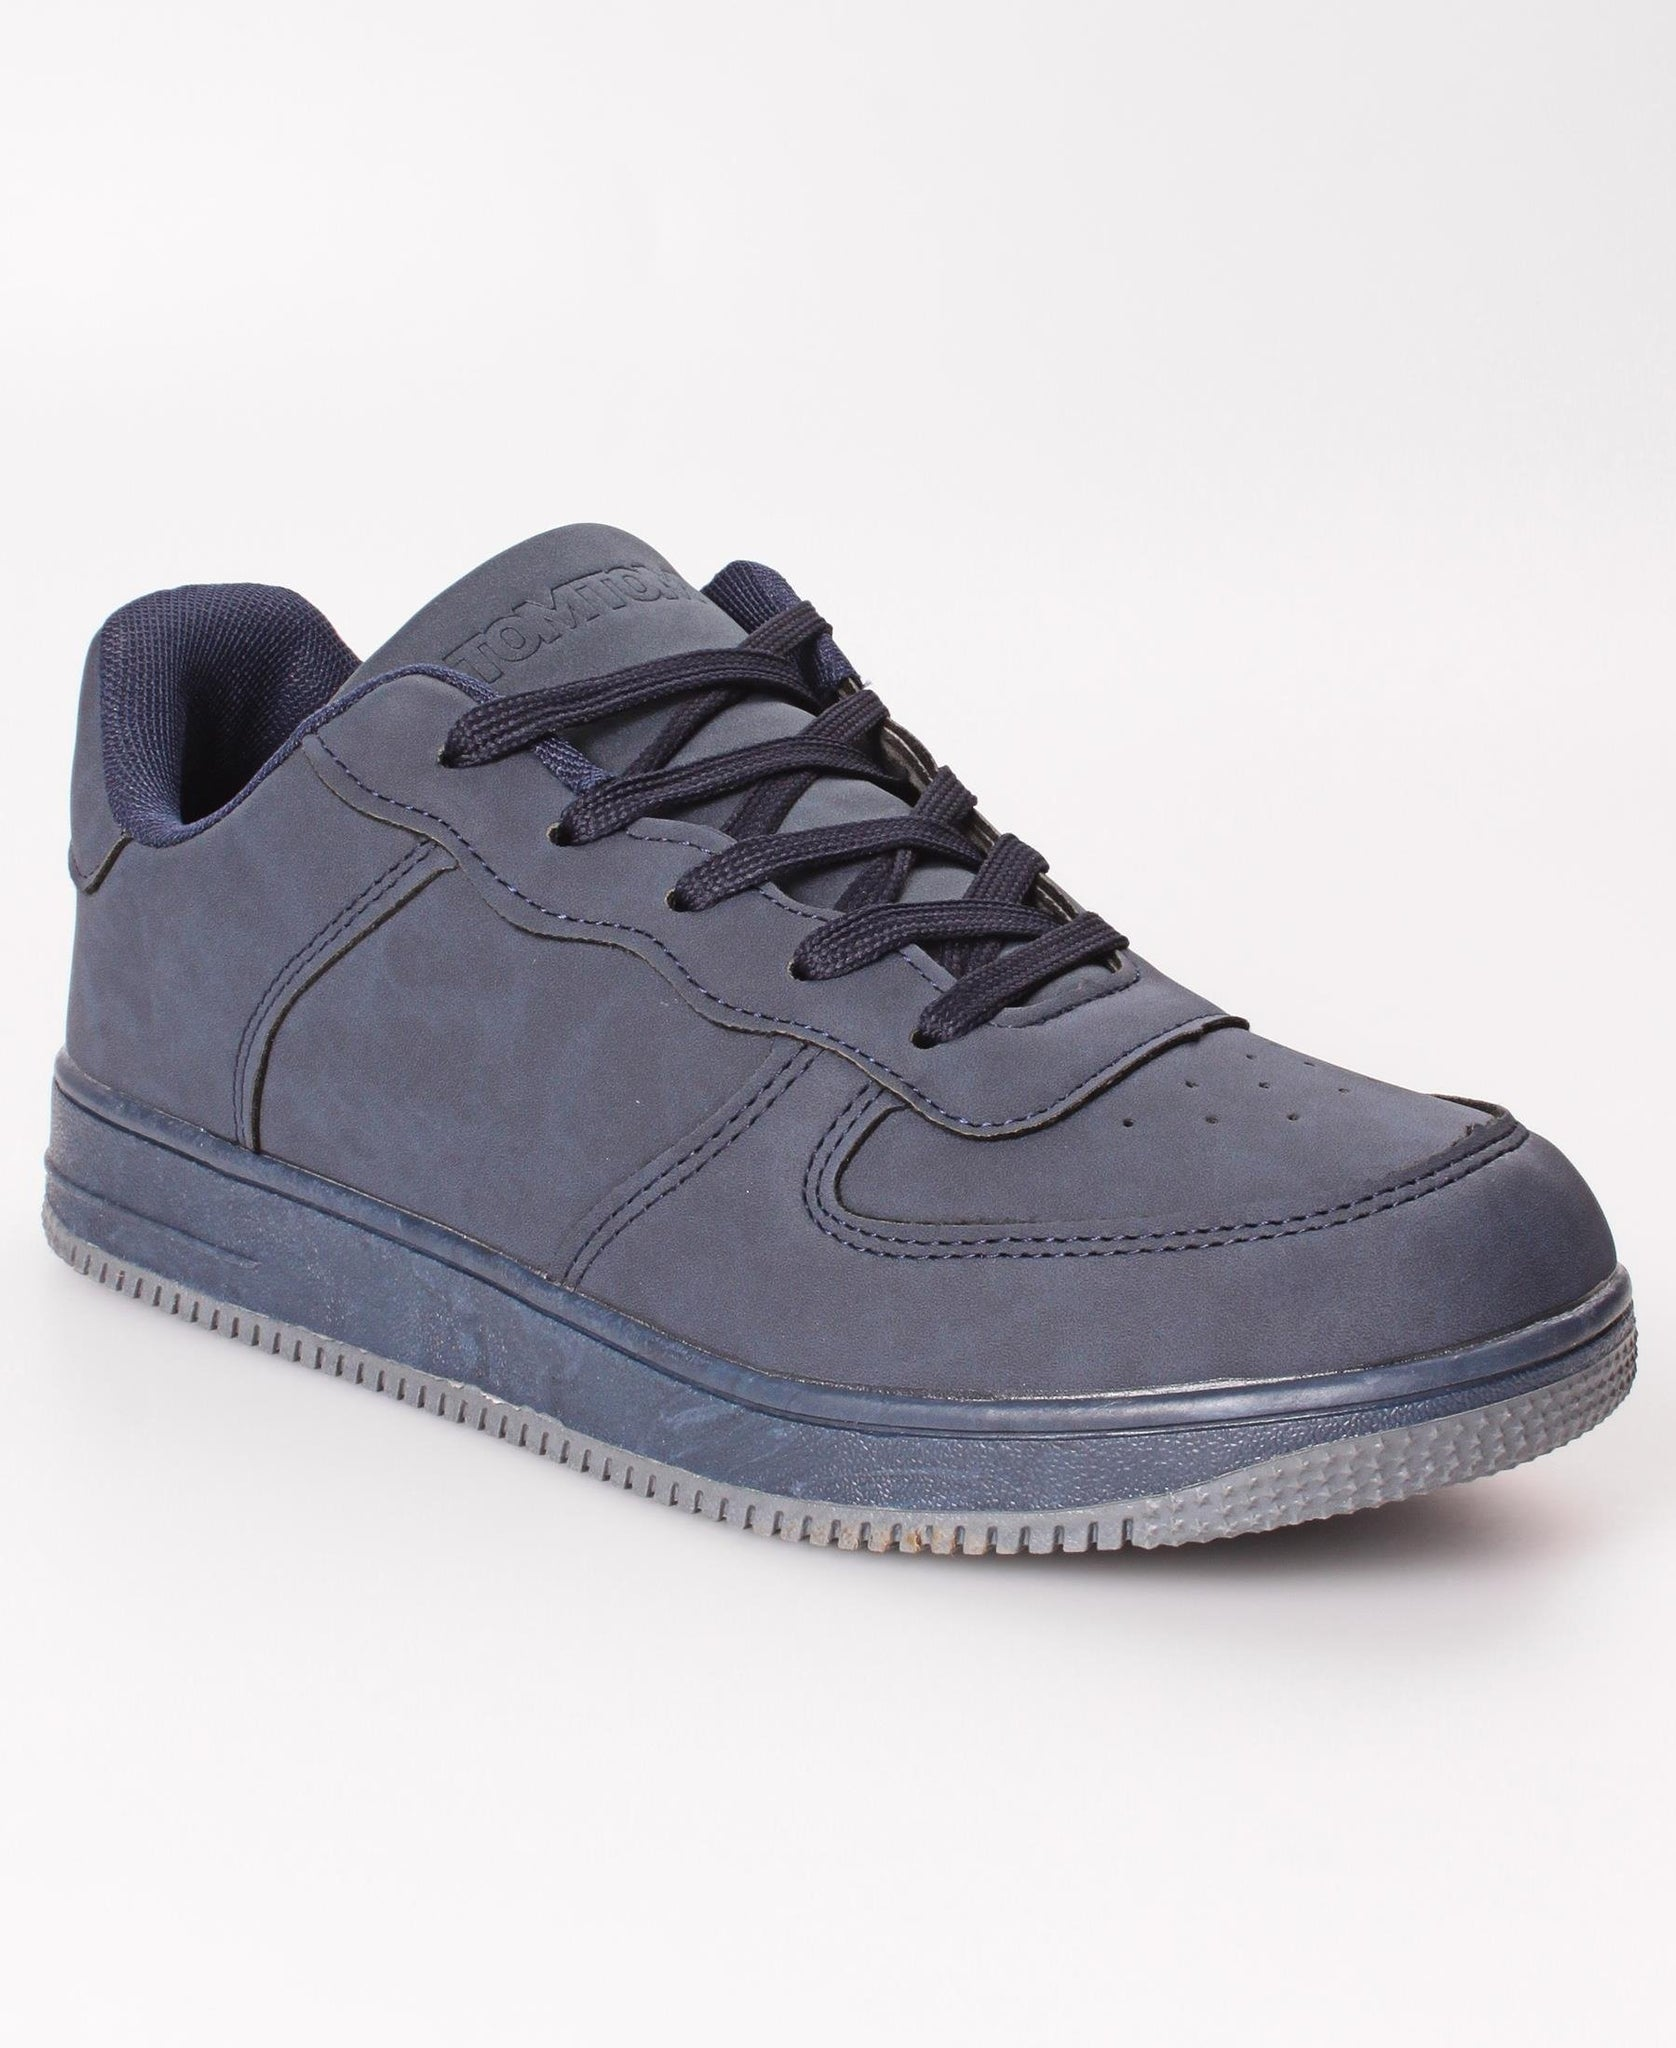 Men's Air Solid Sneakers - Navy